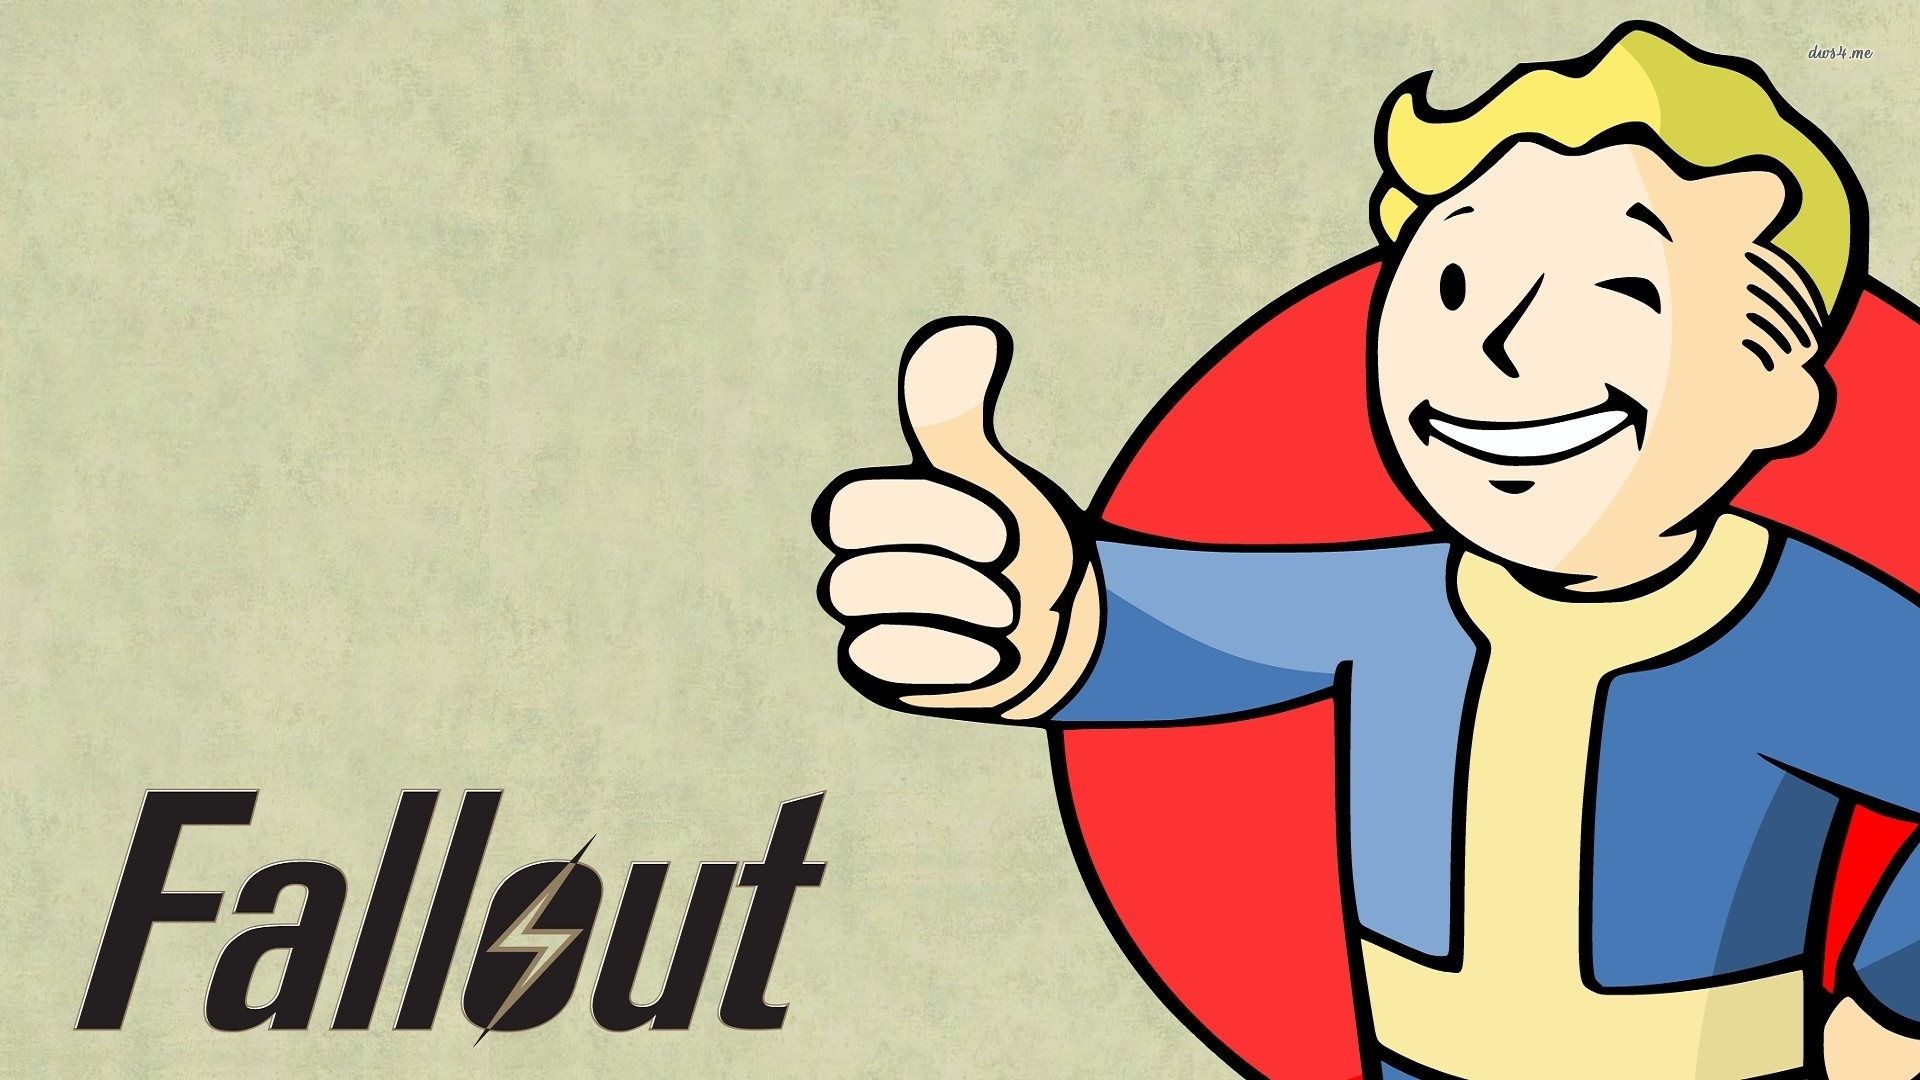 1920x1080 Vault Boy - Fallout wallpaper 1280x800 Vault Boy - Fallout wallpaper .